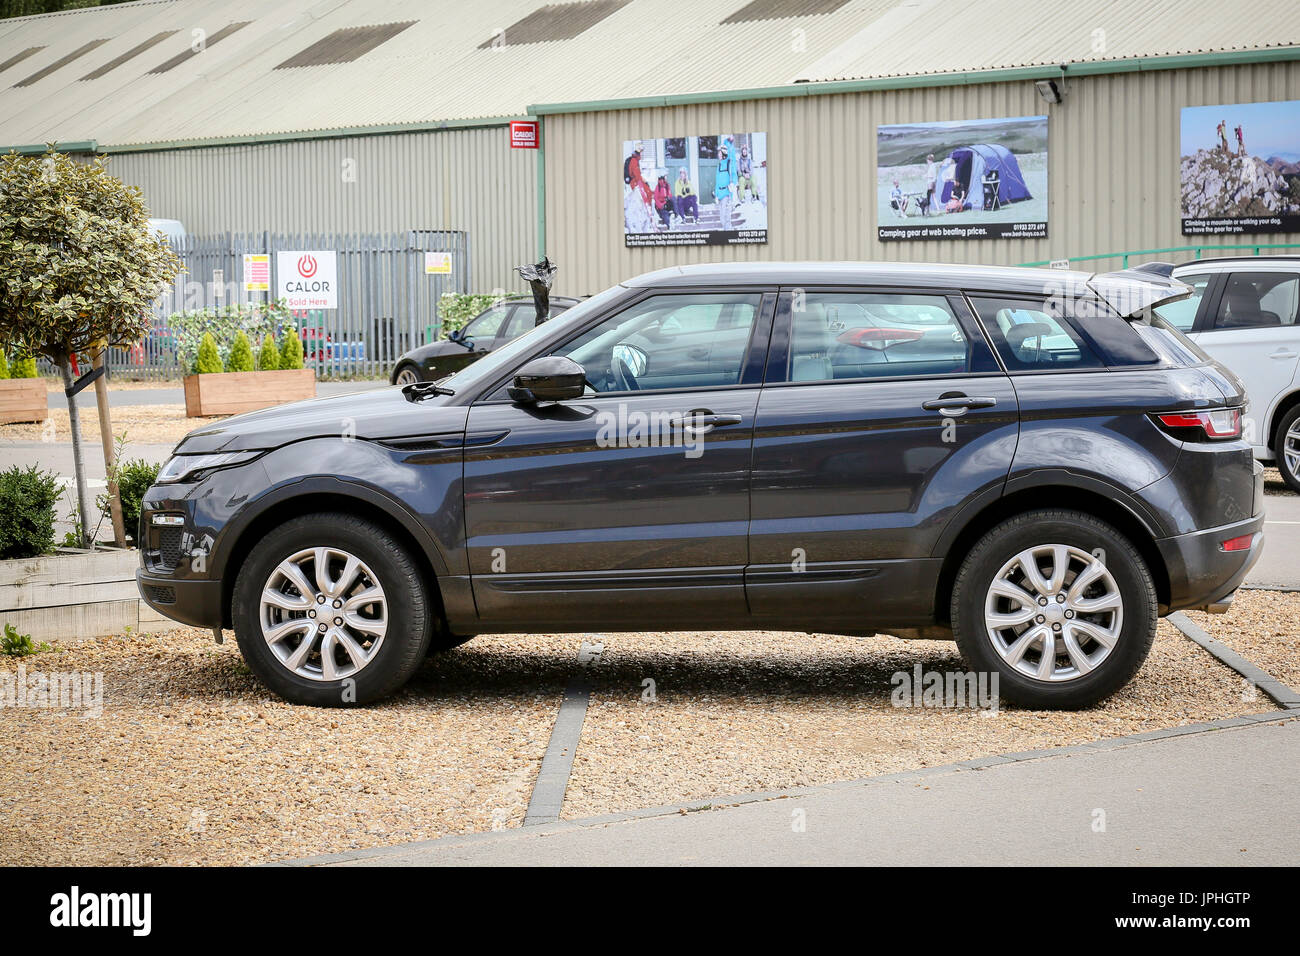 A badly parked 4x4 car - Stock Image